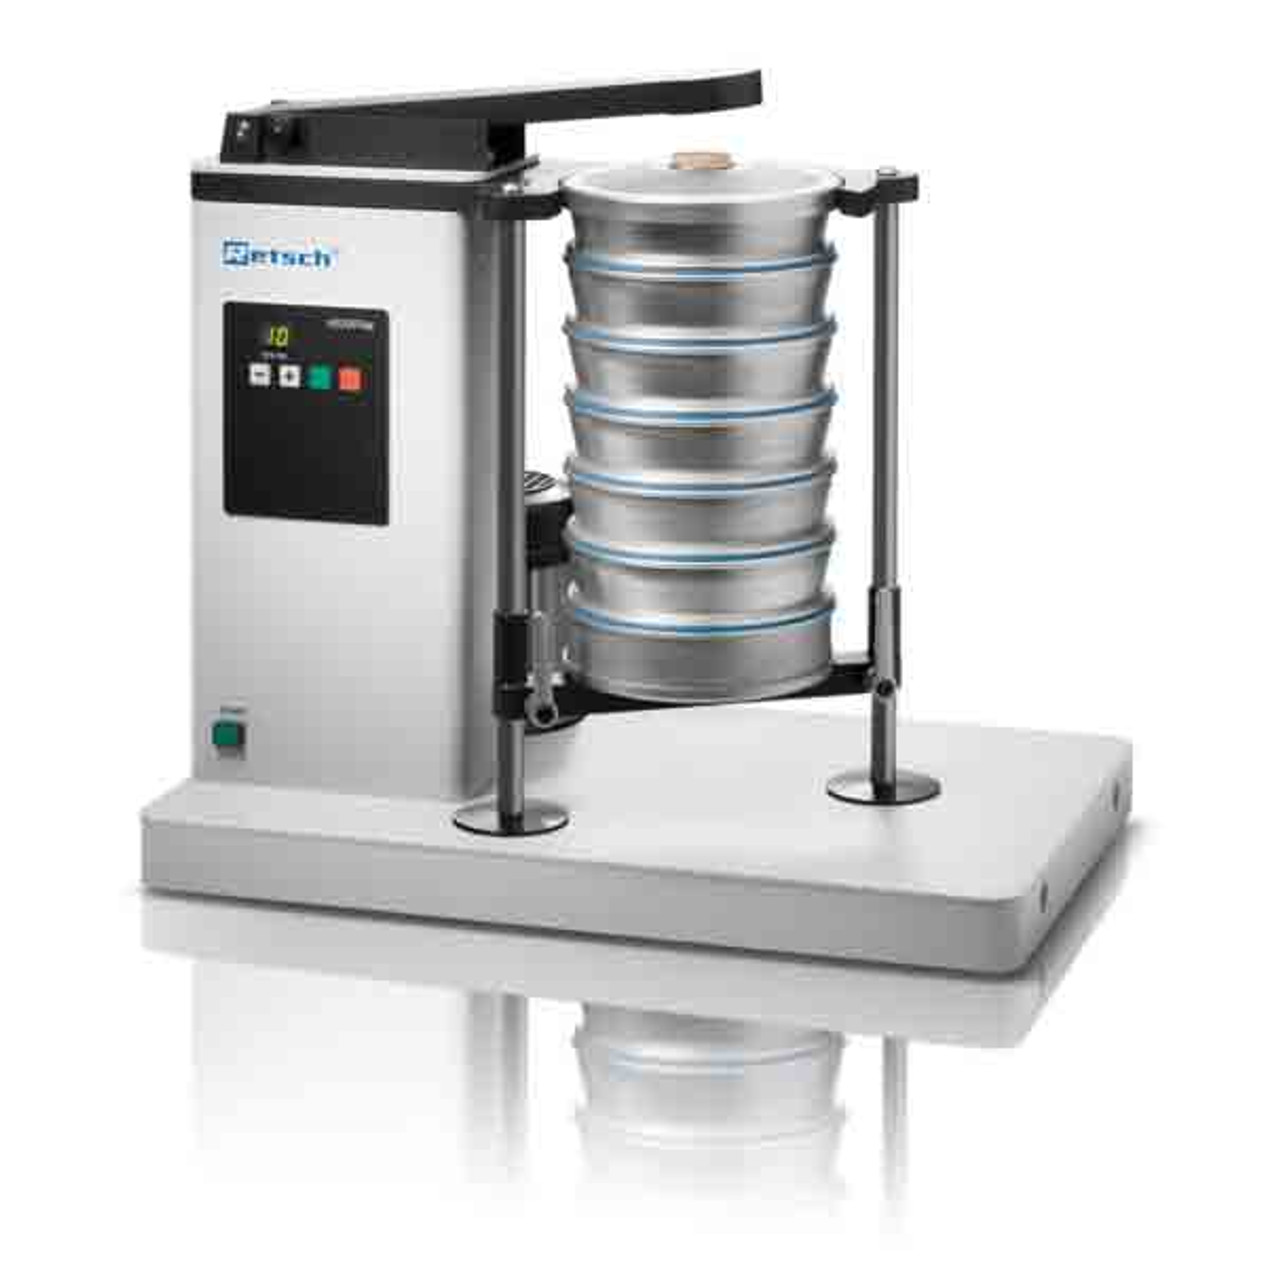 retsch as 200 tap 8 sieve shaker certified material testing products rh certifiedmtp com